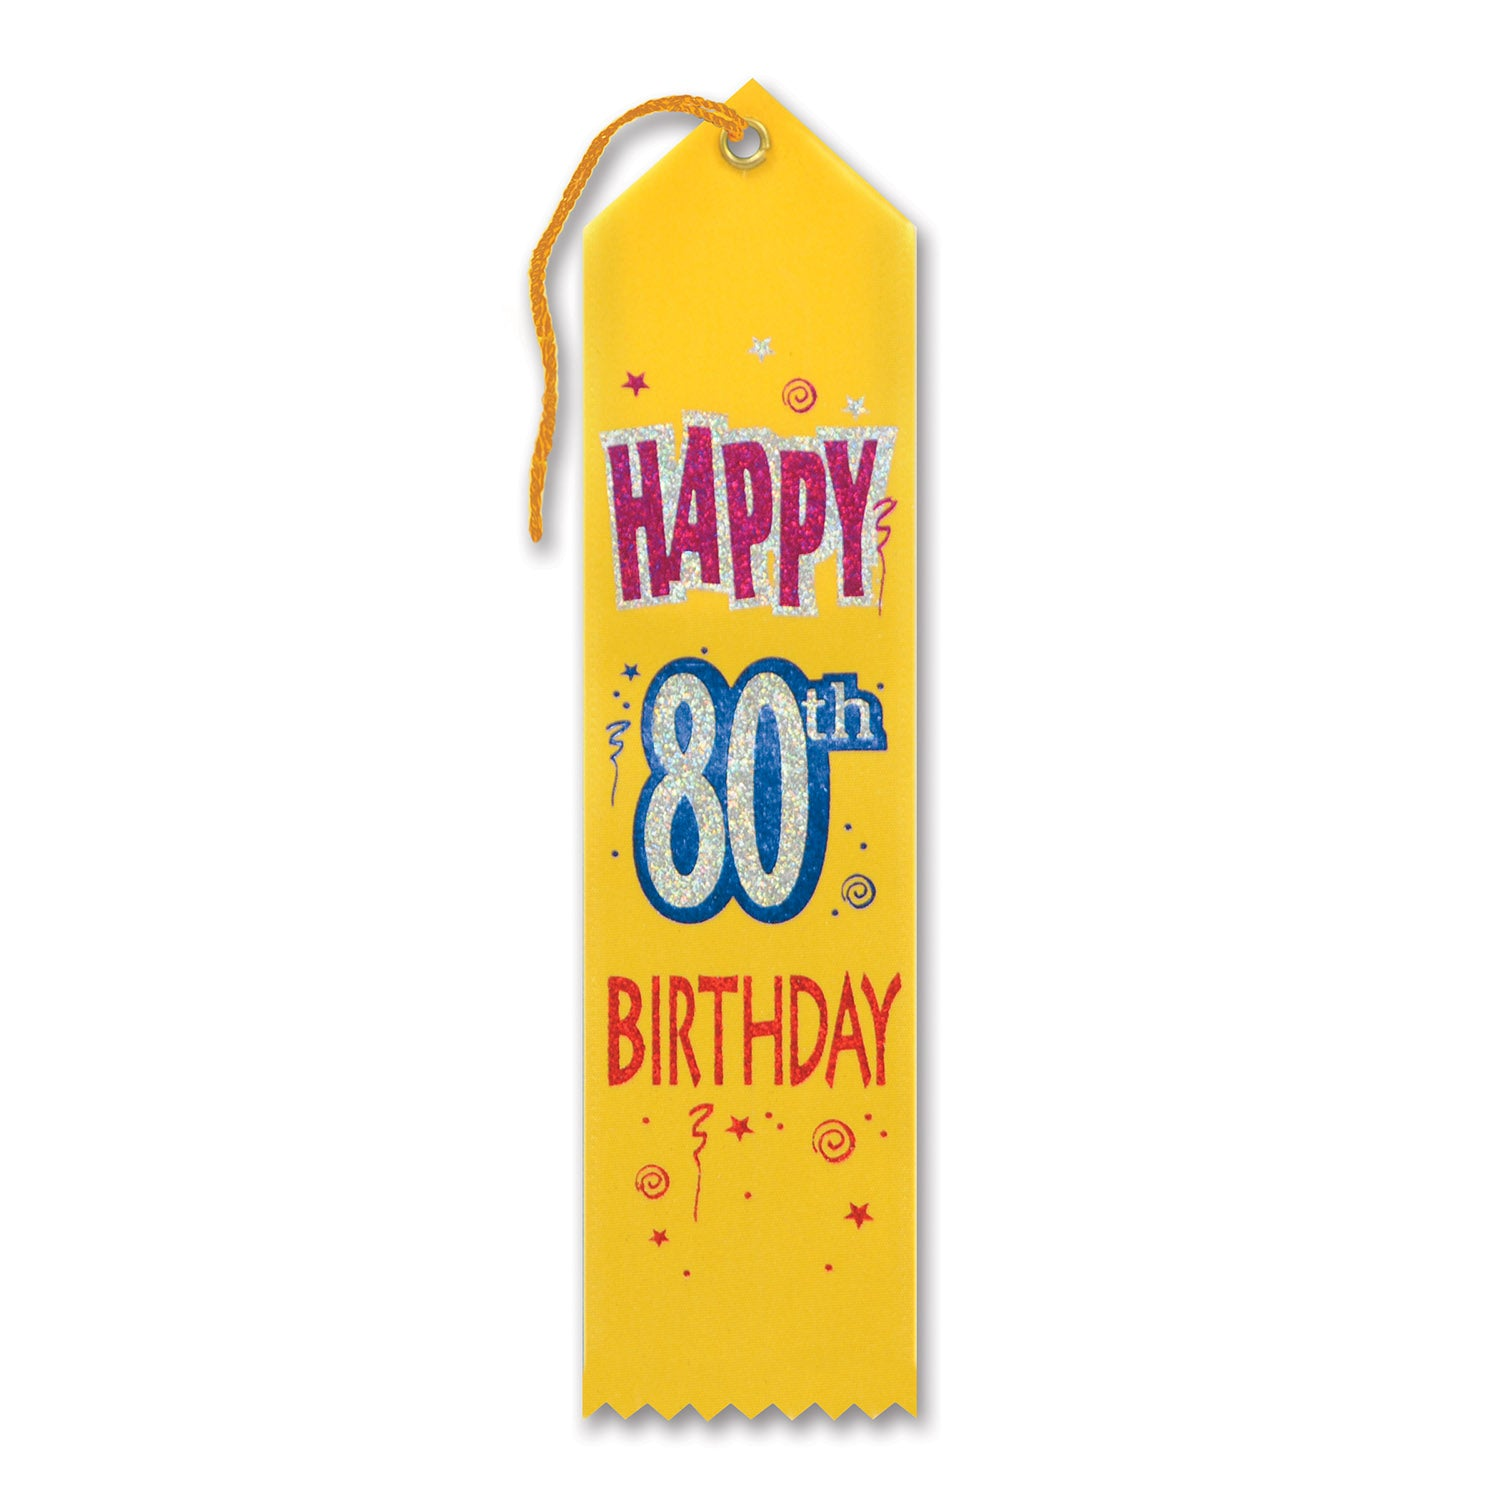 Happy 80th Birthday Award Ribbon by Beistle - 80th Birthday Party Decorations